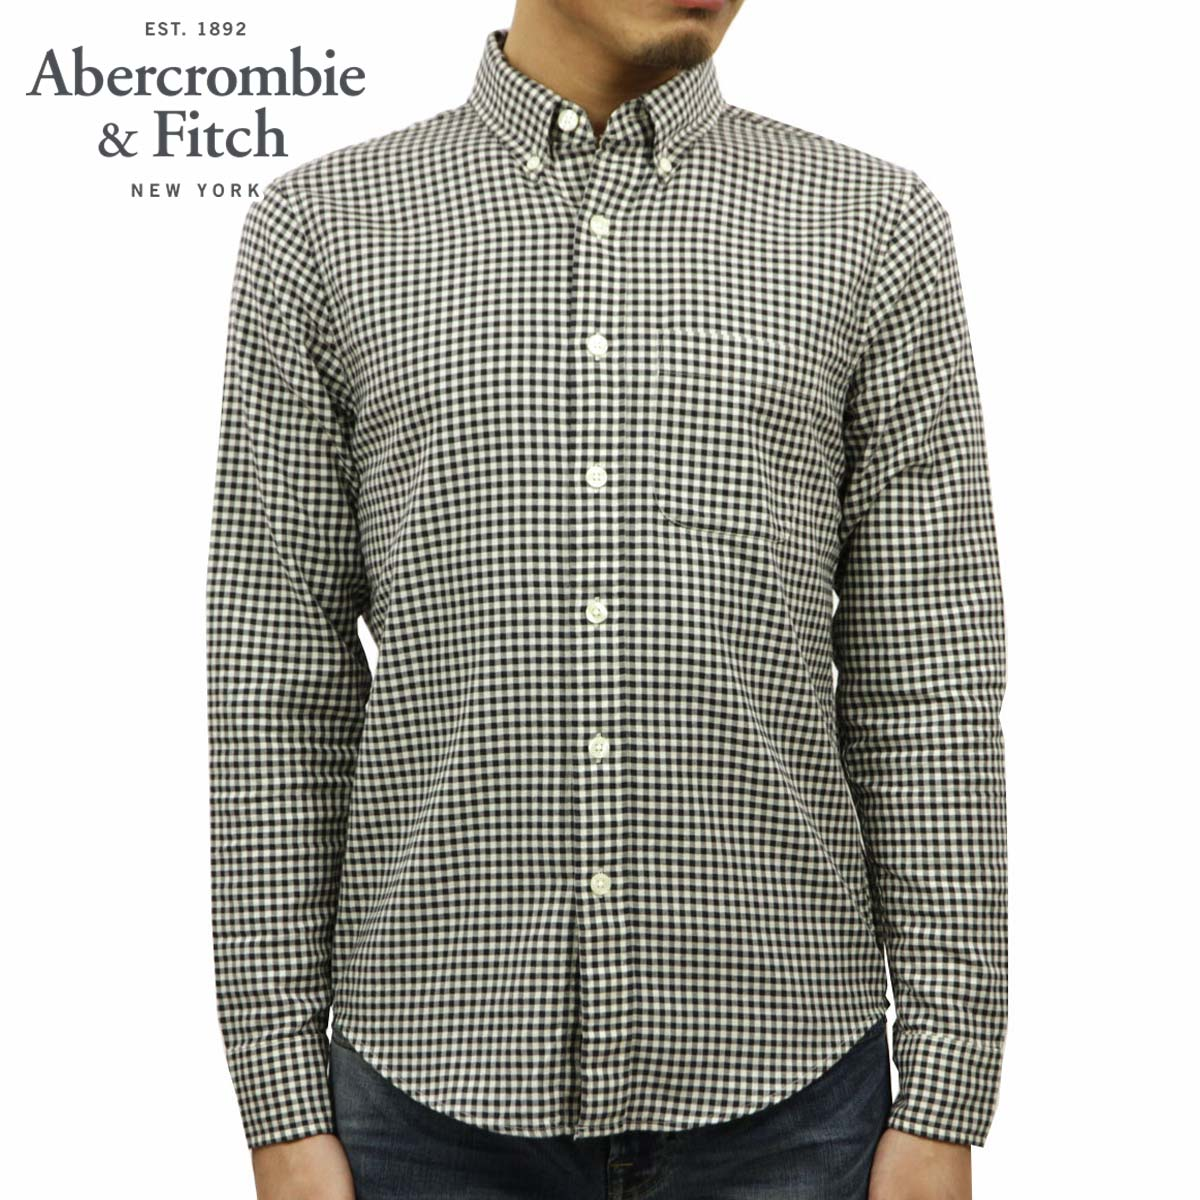 アバクロ Abercrombie&Fitch 正規品 メンズ 長袖シャツ Gingham Herringbone Button-Up Shirt 125-168-2354-138 D00S20